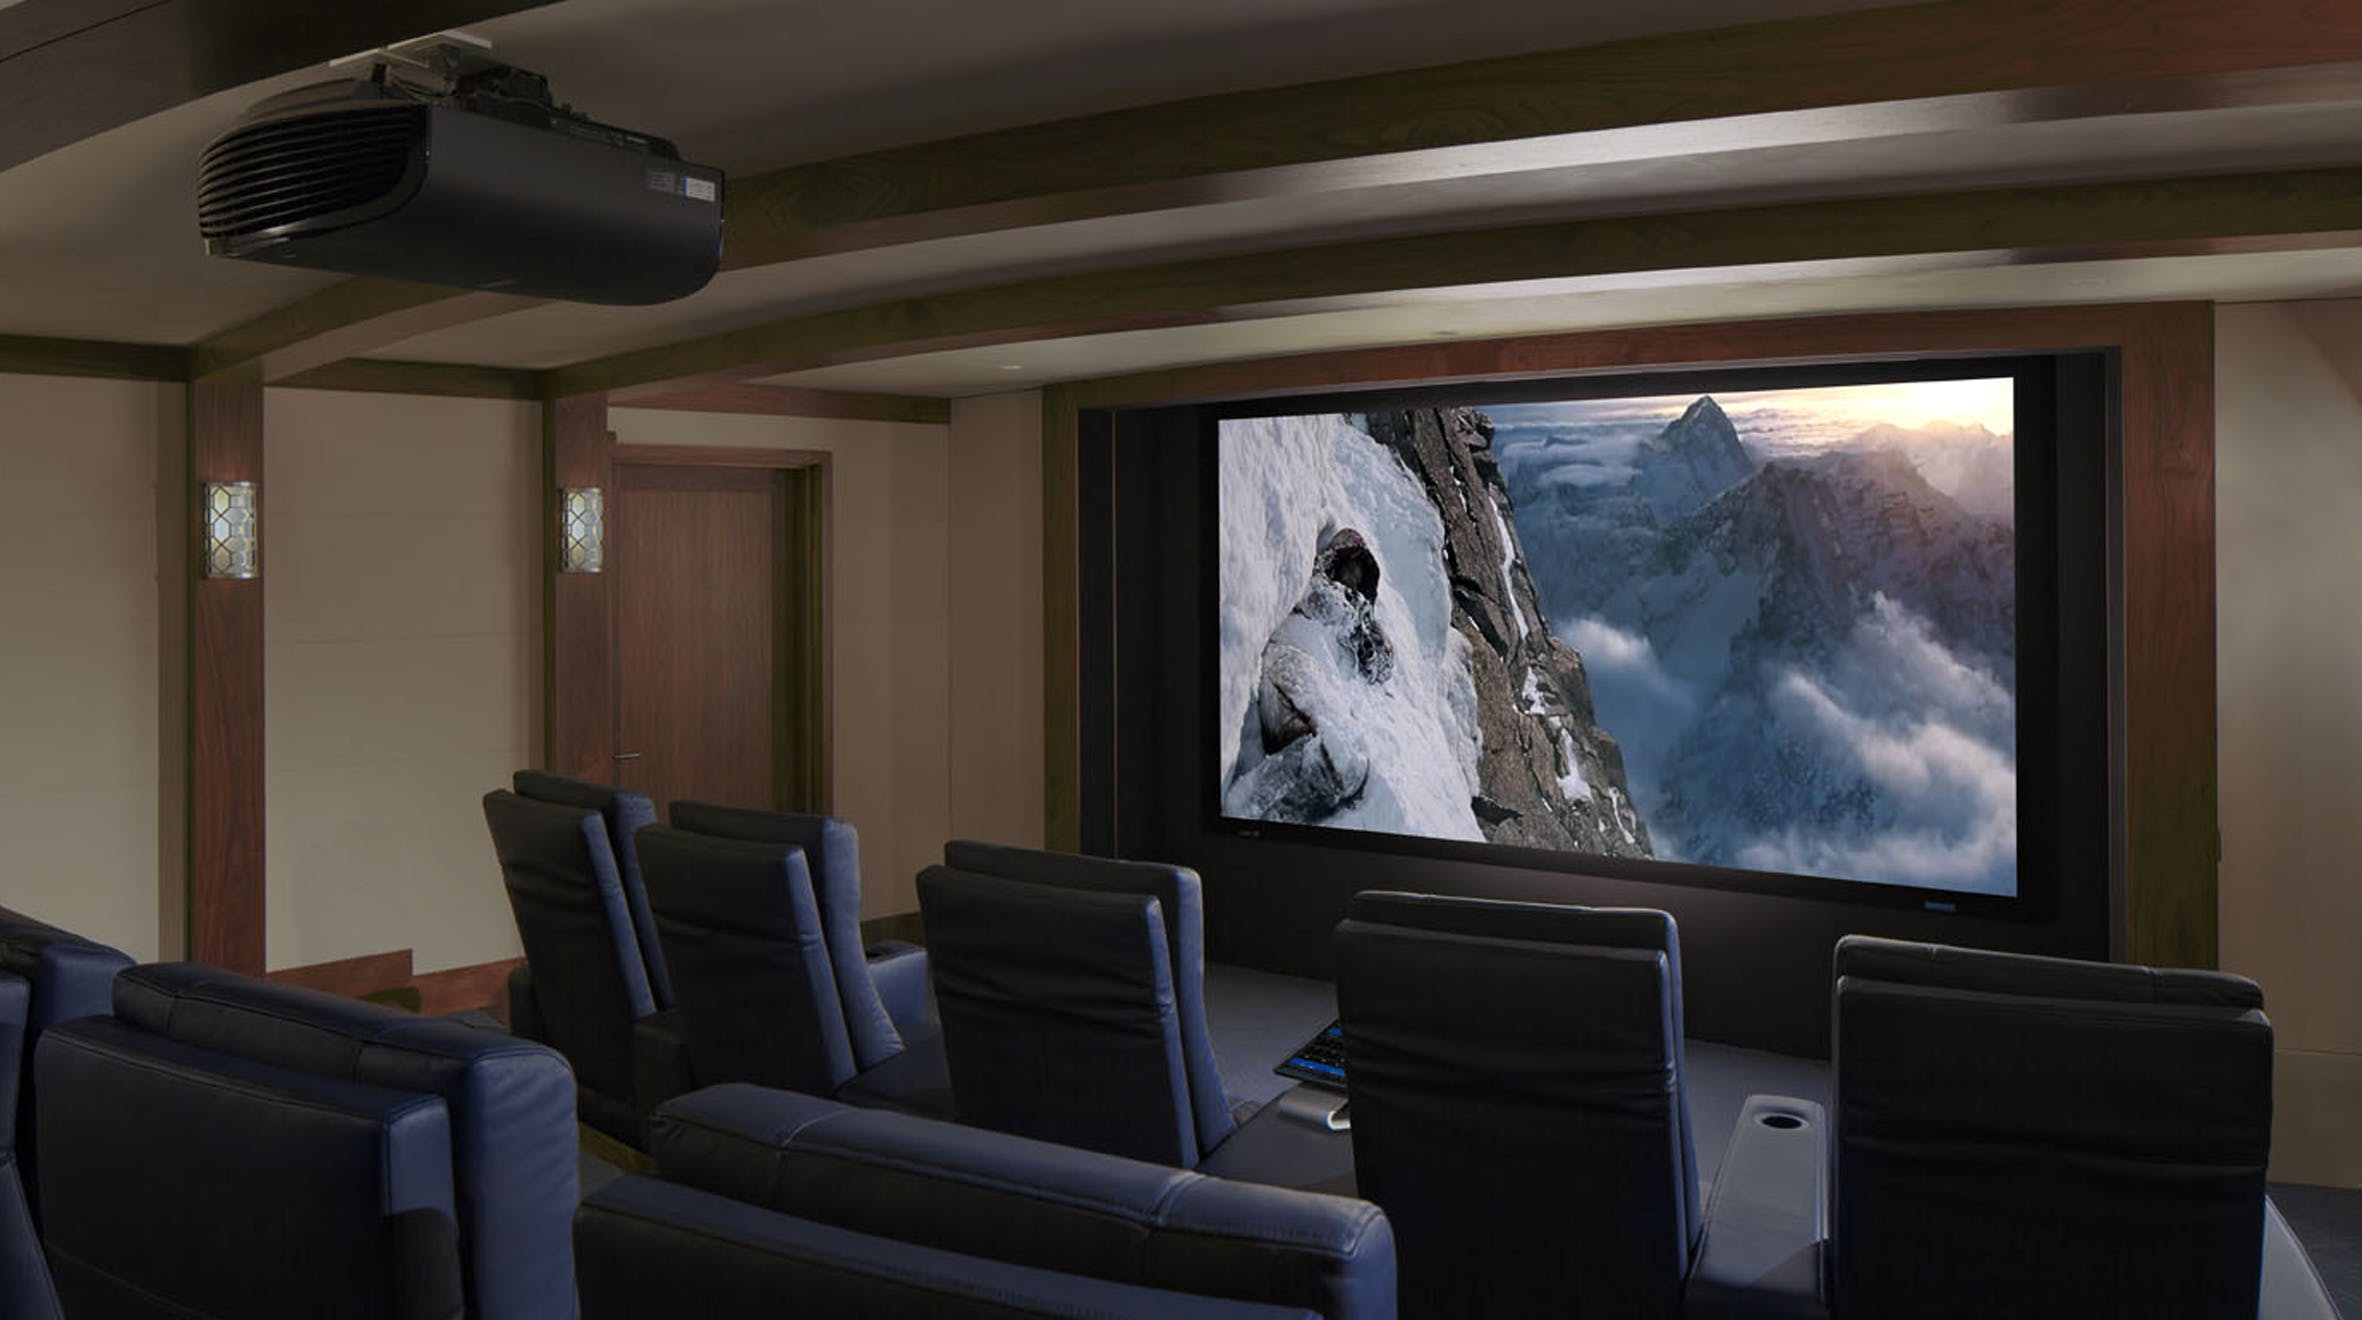 Video Displays & Projectors